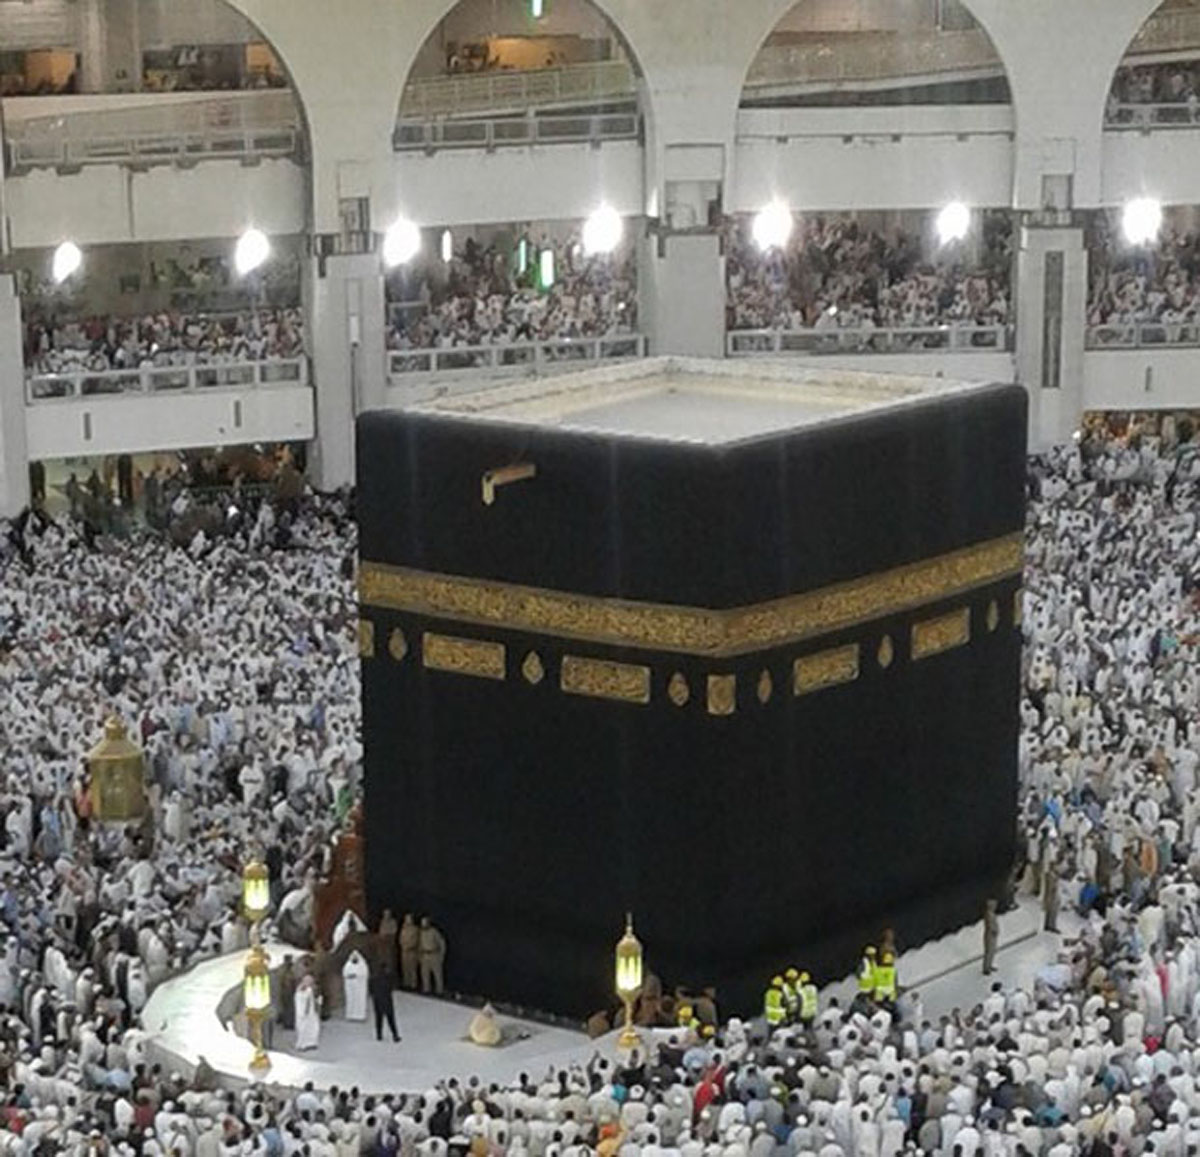 Mecca and Medina Holiest City In Islam